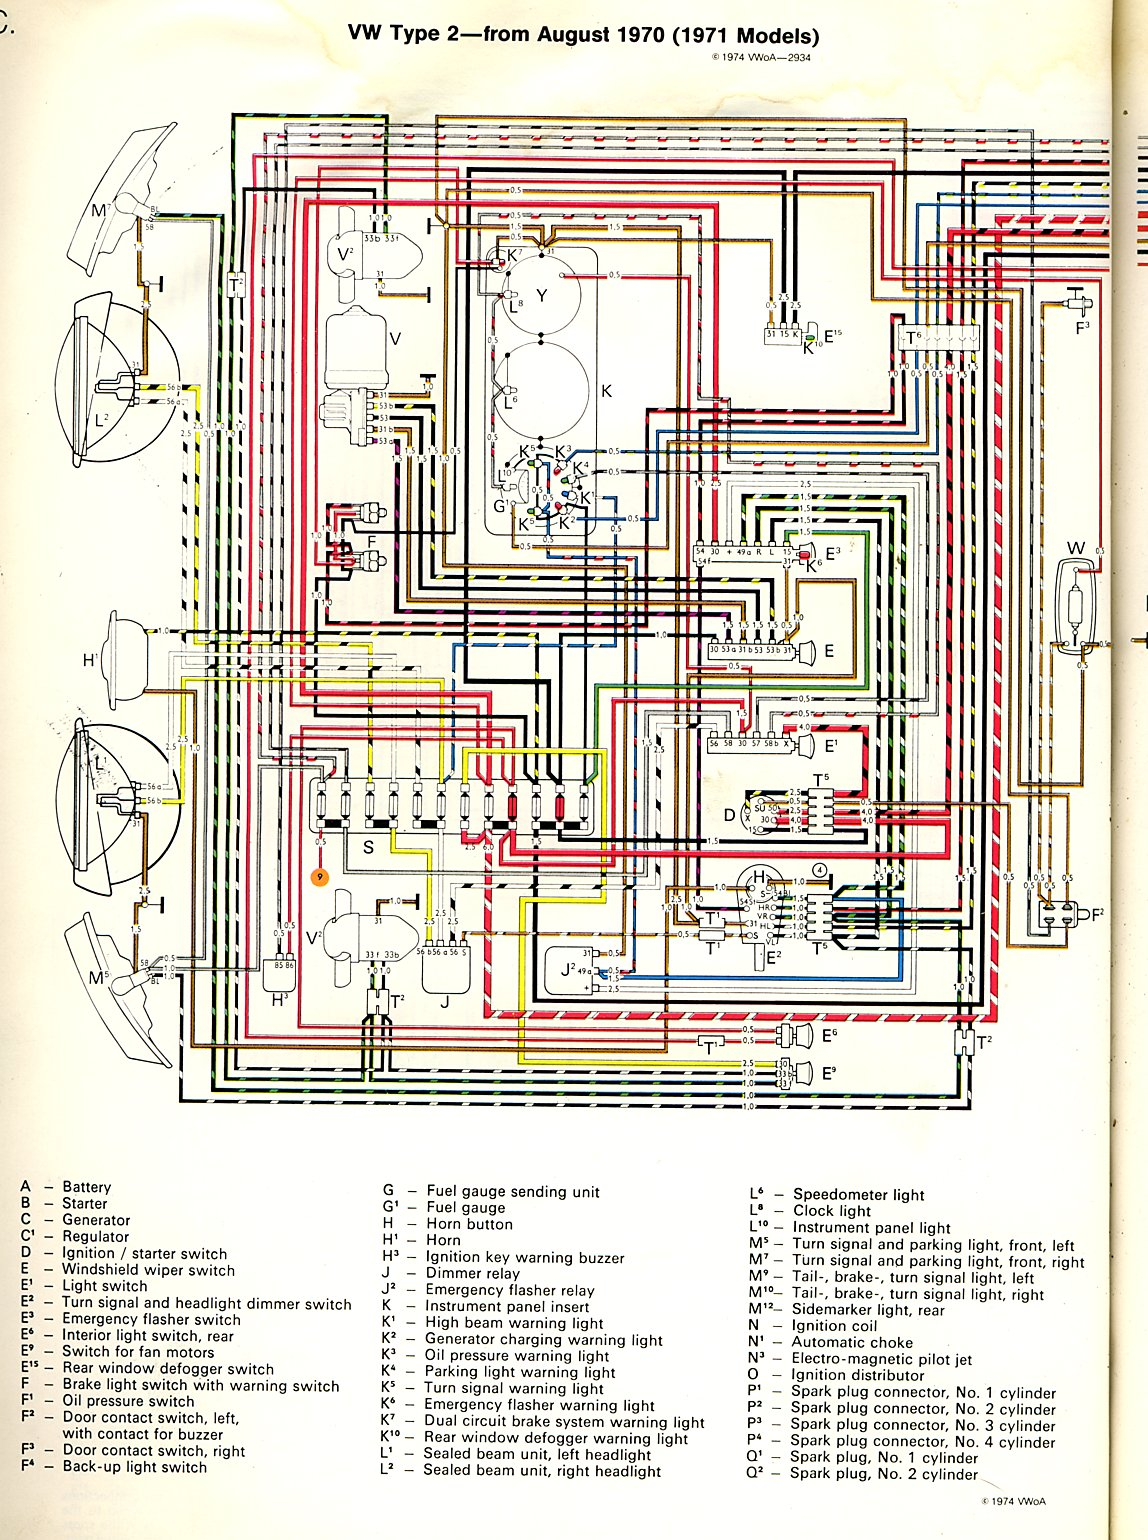 baybus_71a 28 [ 1971 vw bus wiring diagram ] 1971 vw bus turn signal 74 VW Beetle Wiring Diagram at crackthecode.co